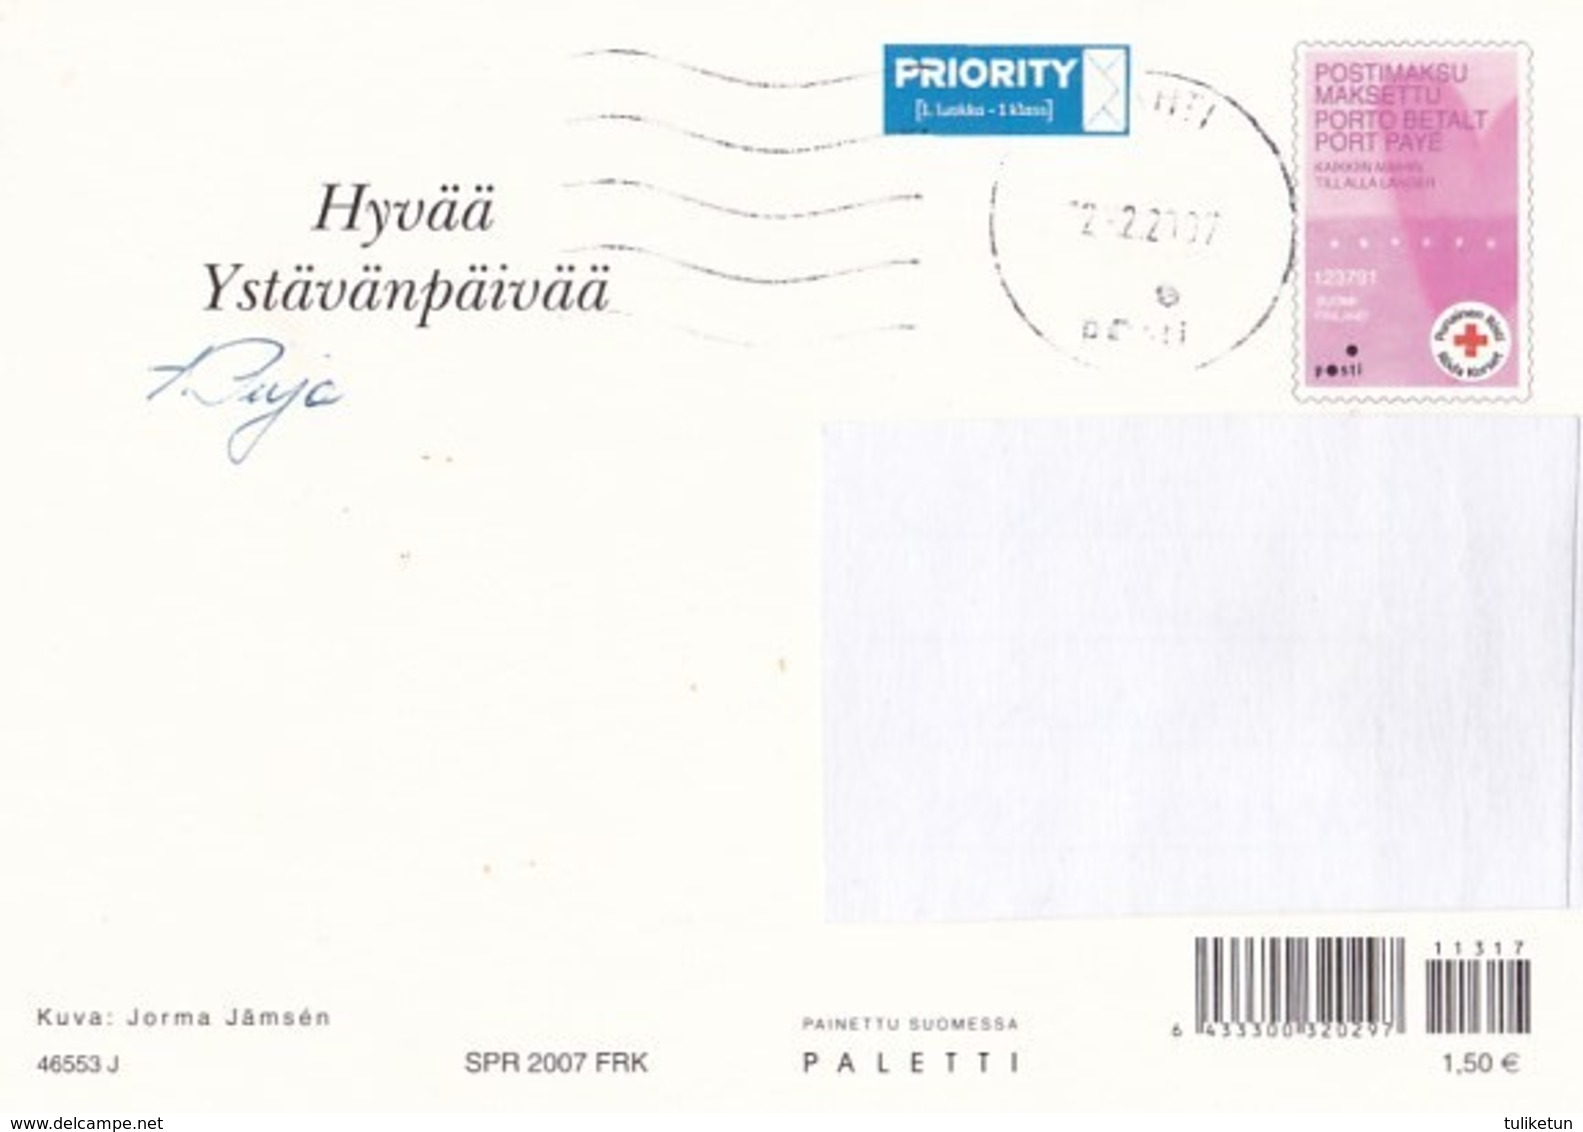 Postal Stationery - Flowers - Roses With Chocolate - Red Cross 2007 - Suomi Finland - Postage Paid - Finlande